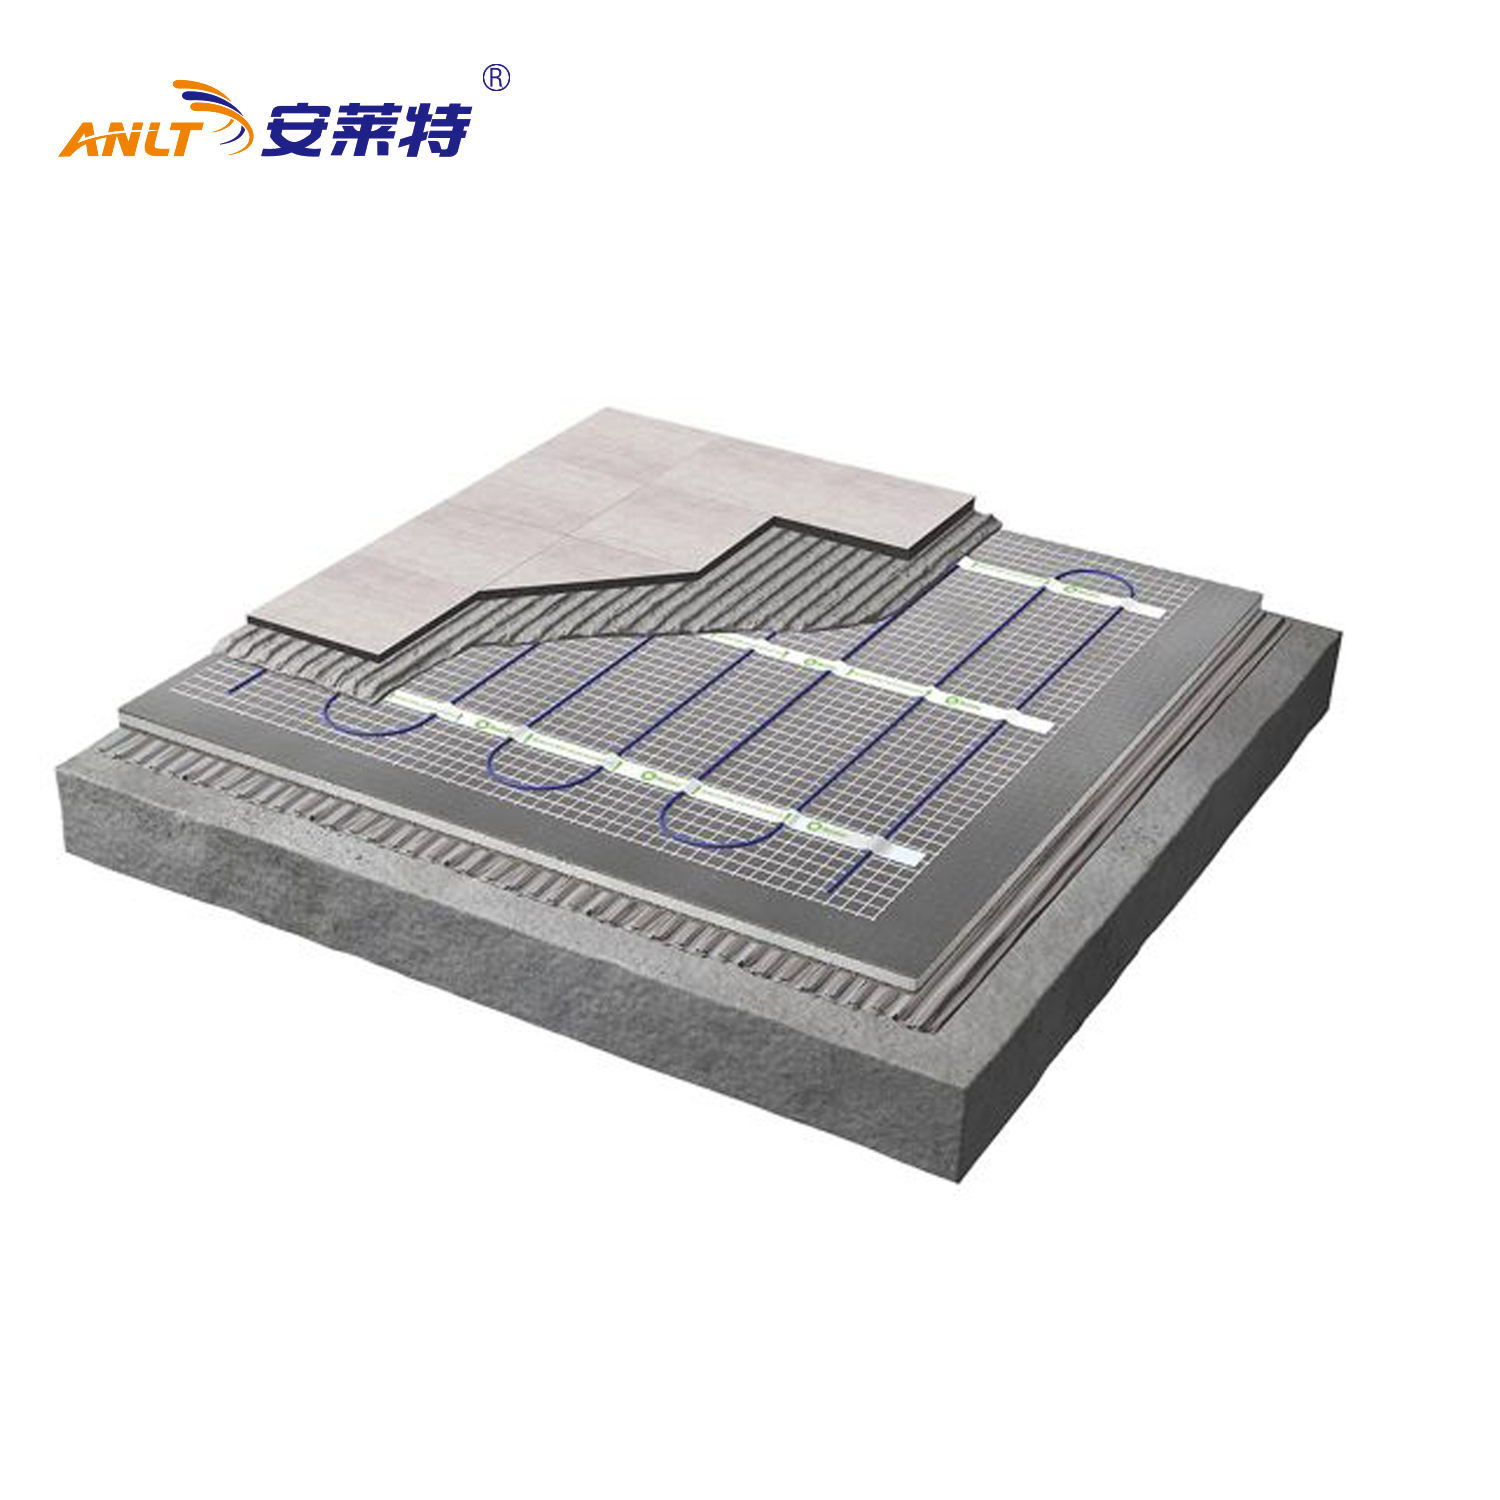 Electric Underfloor Heating mat Tile Radiant Warm System Self Adhesive Mats